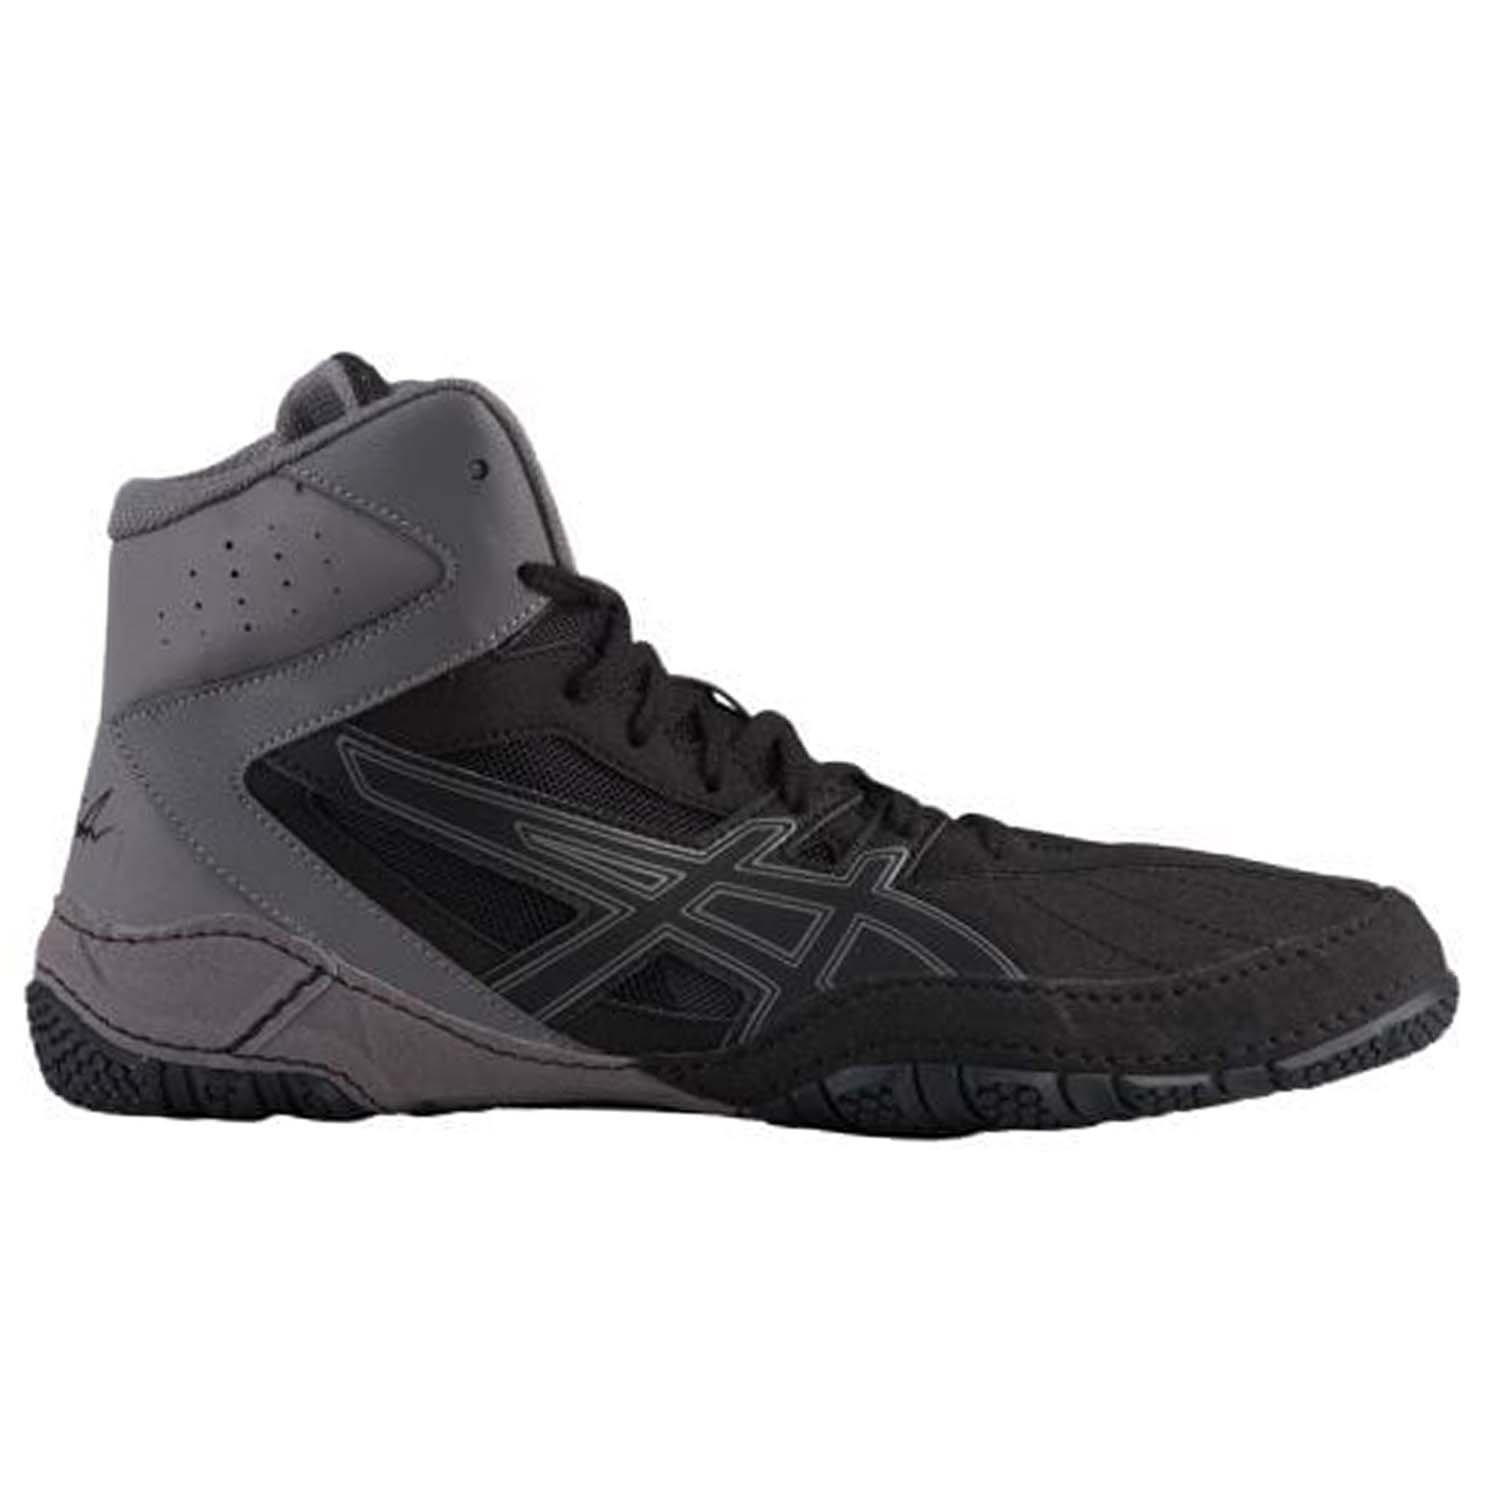 ASICS Men's Cael V8.0 Men's Wrestling Shoe, Black/Black, 12 M US 1081A002